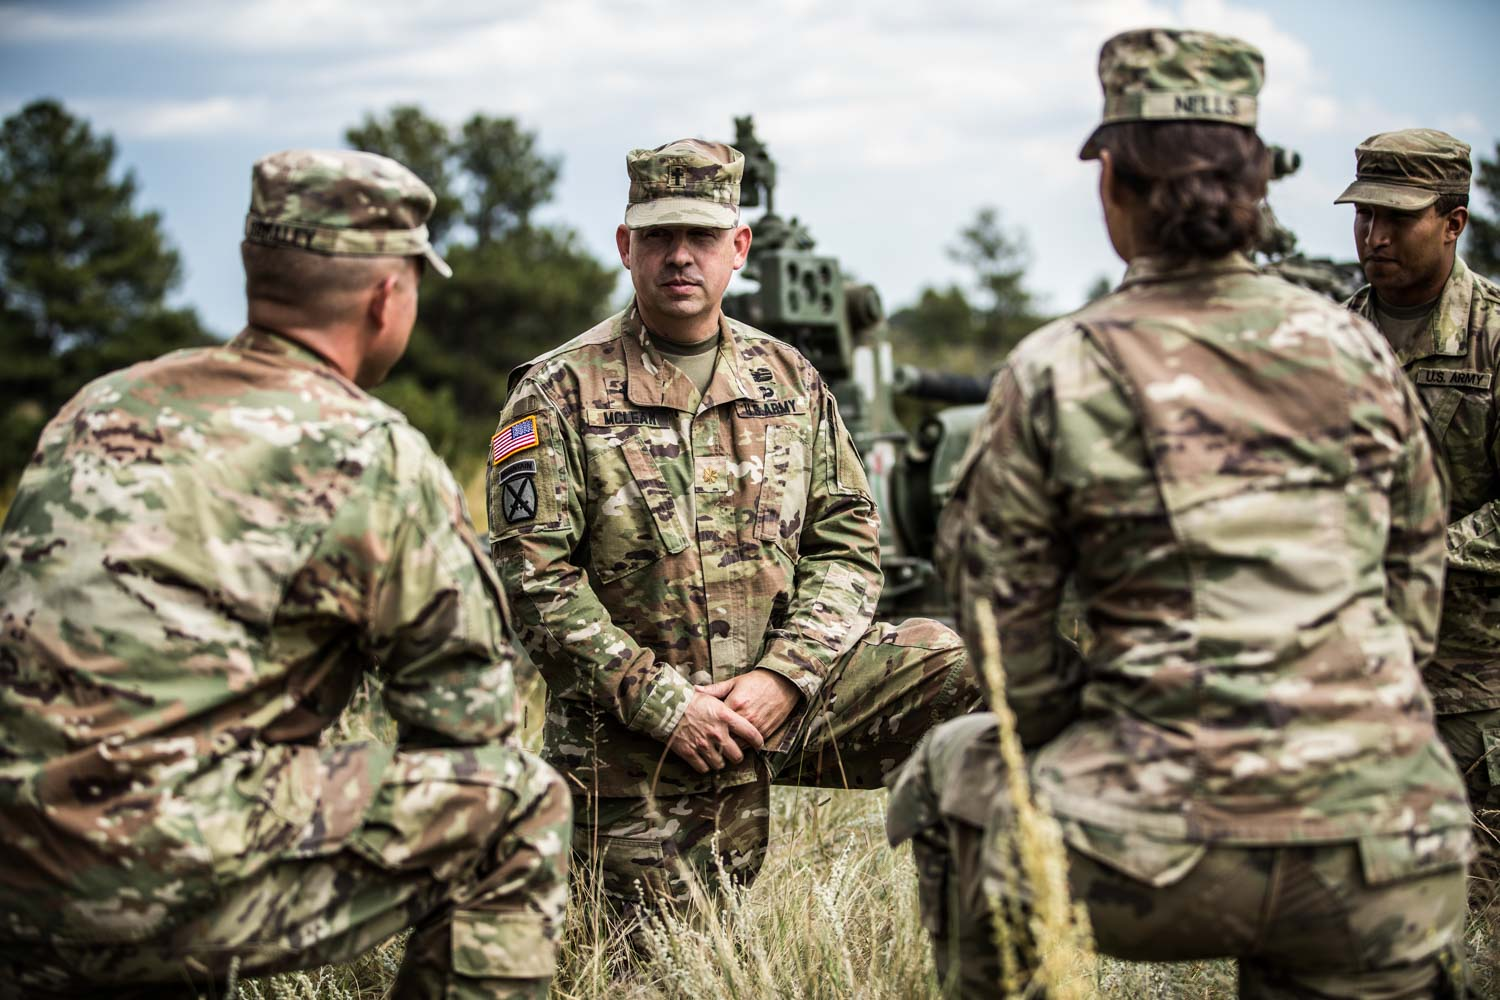 An unconventional path to Army chaplaincy